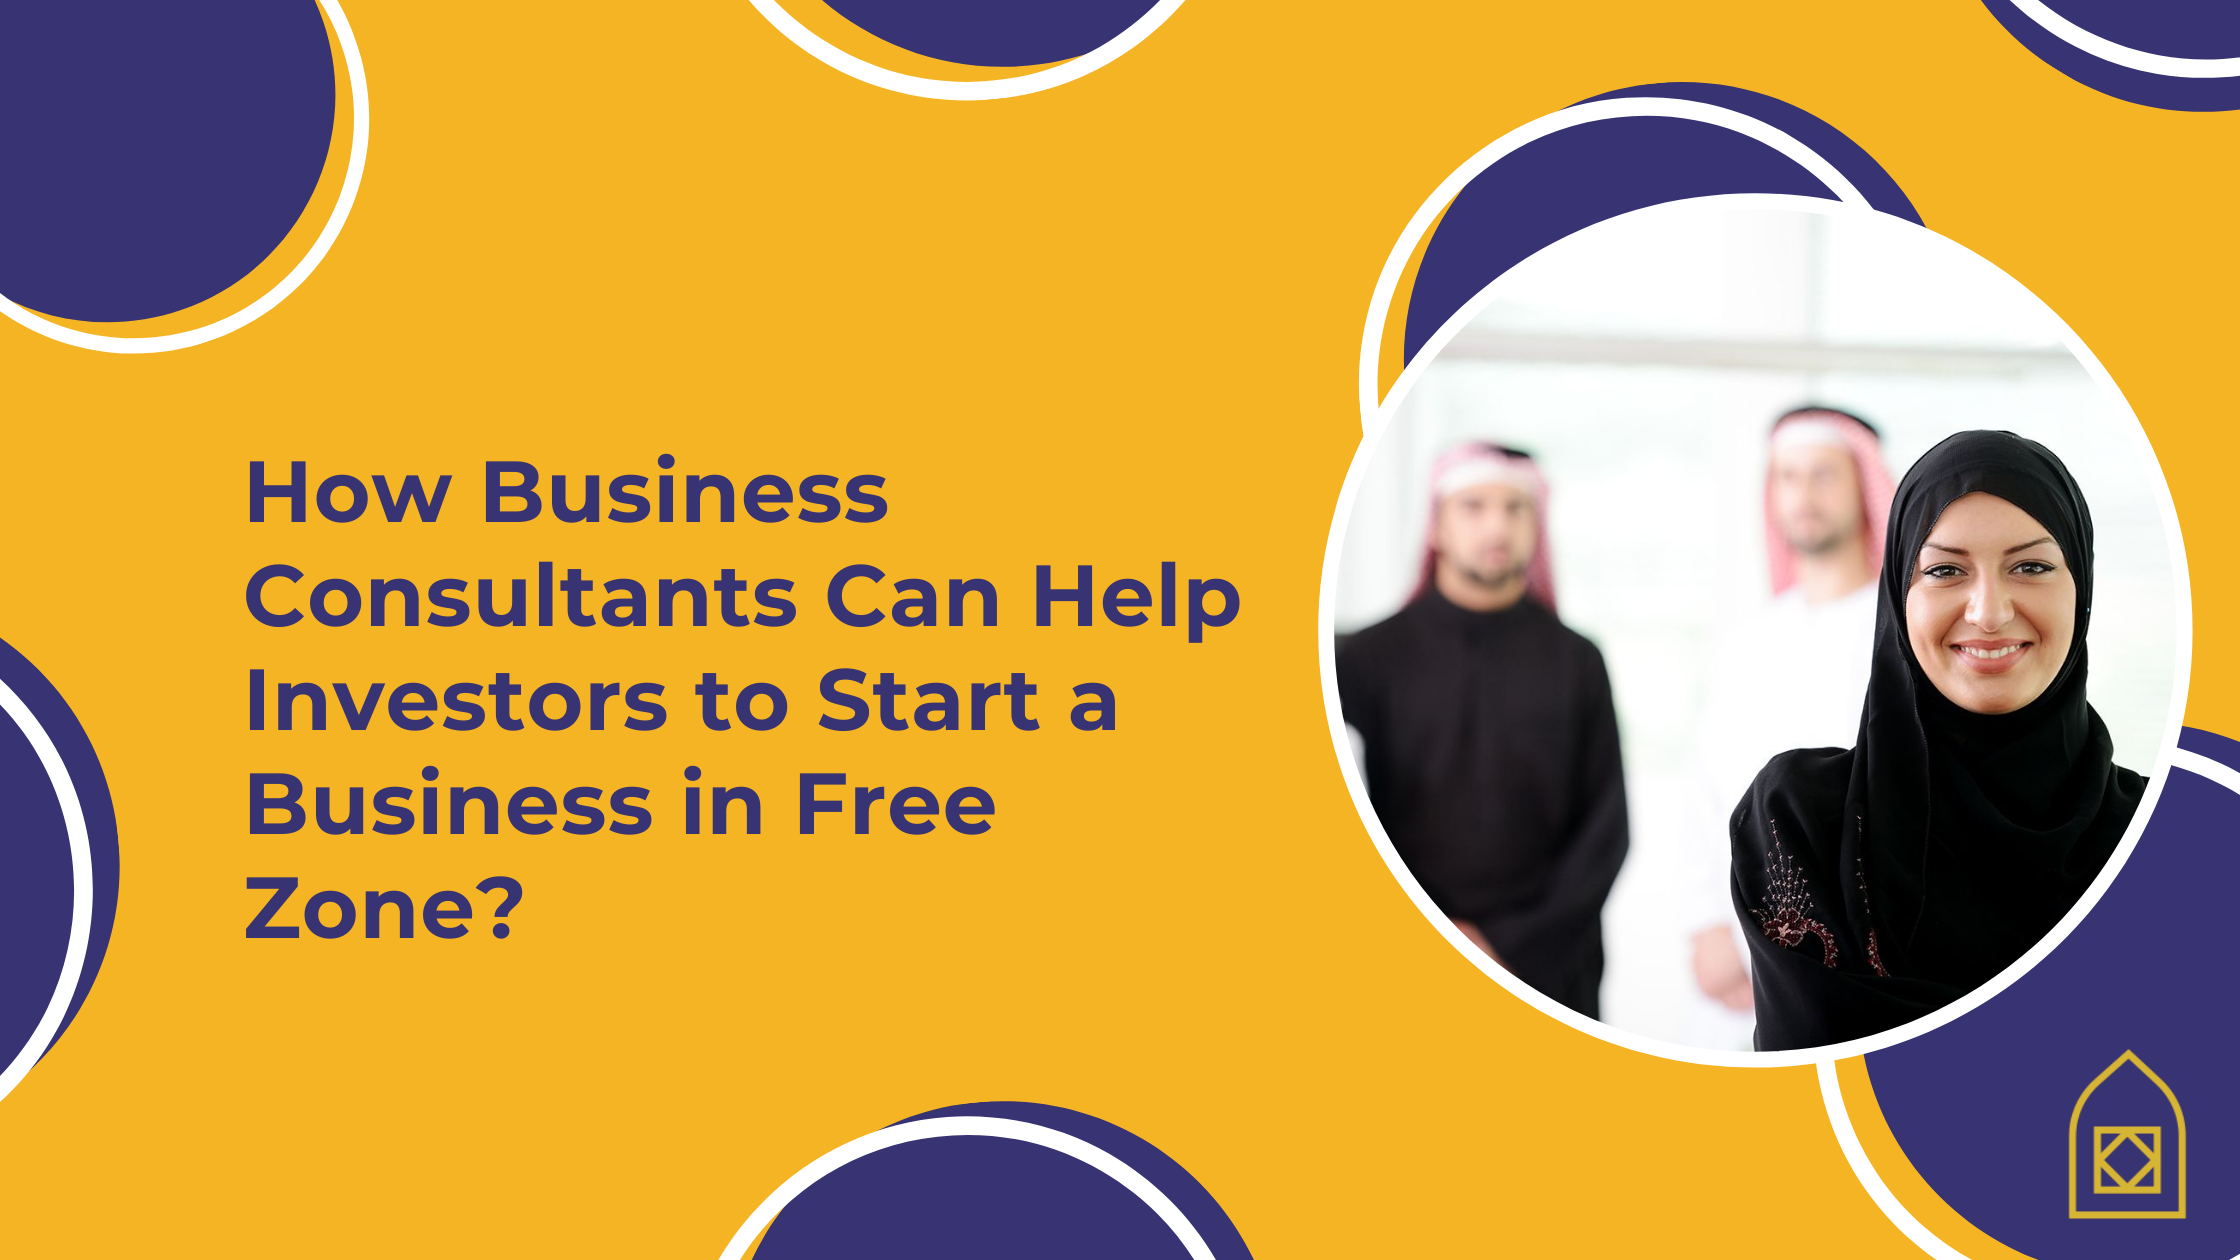 How Business Consultants Can Help Investors to Start a Business in Free Zone